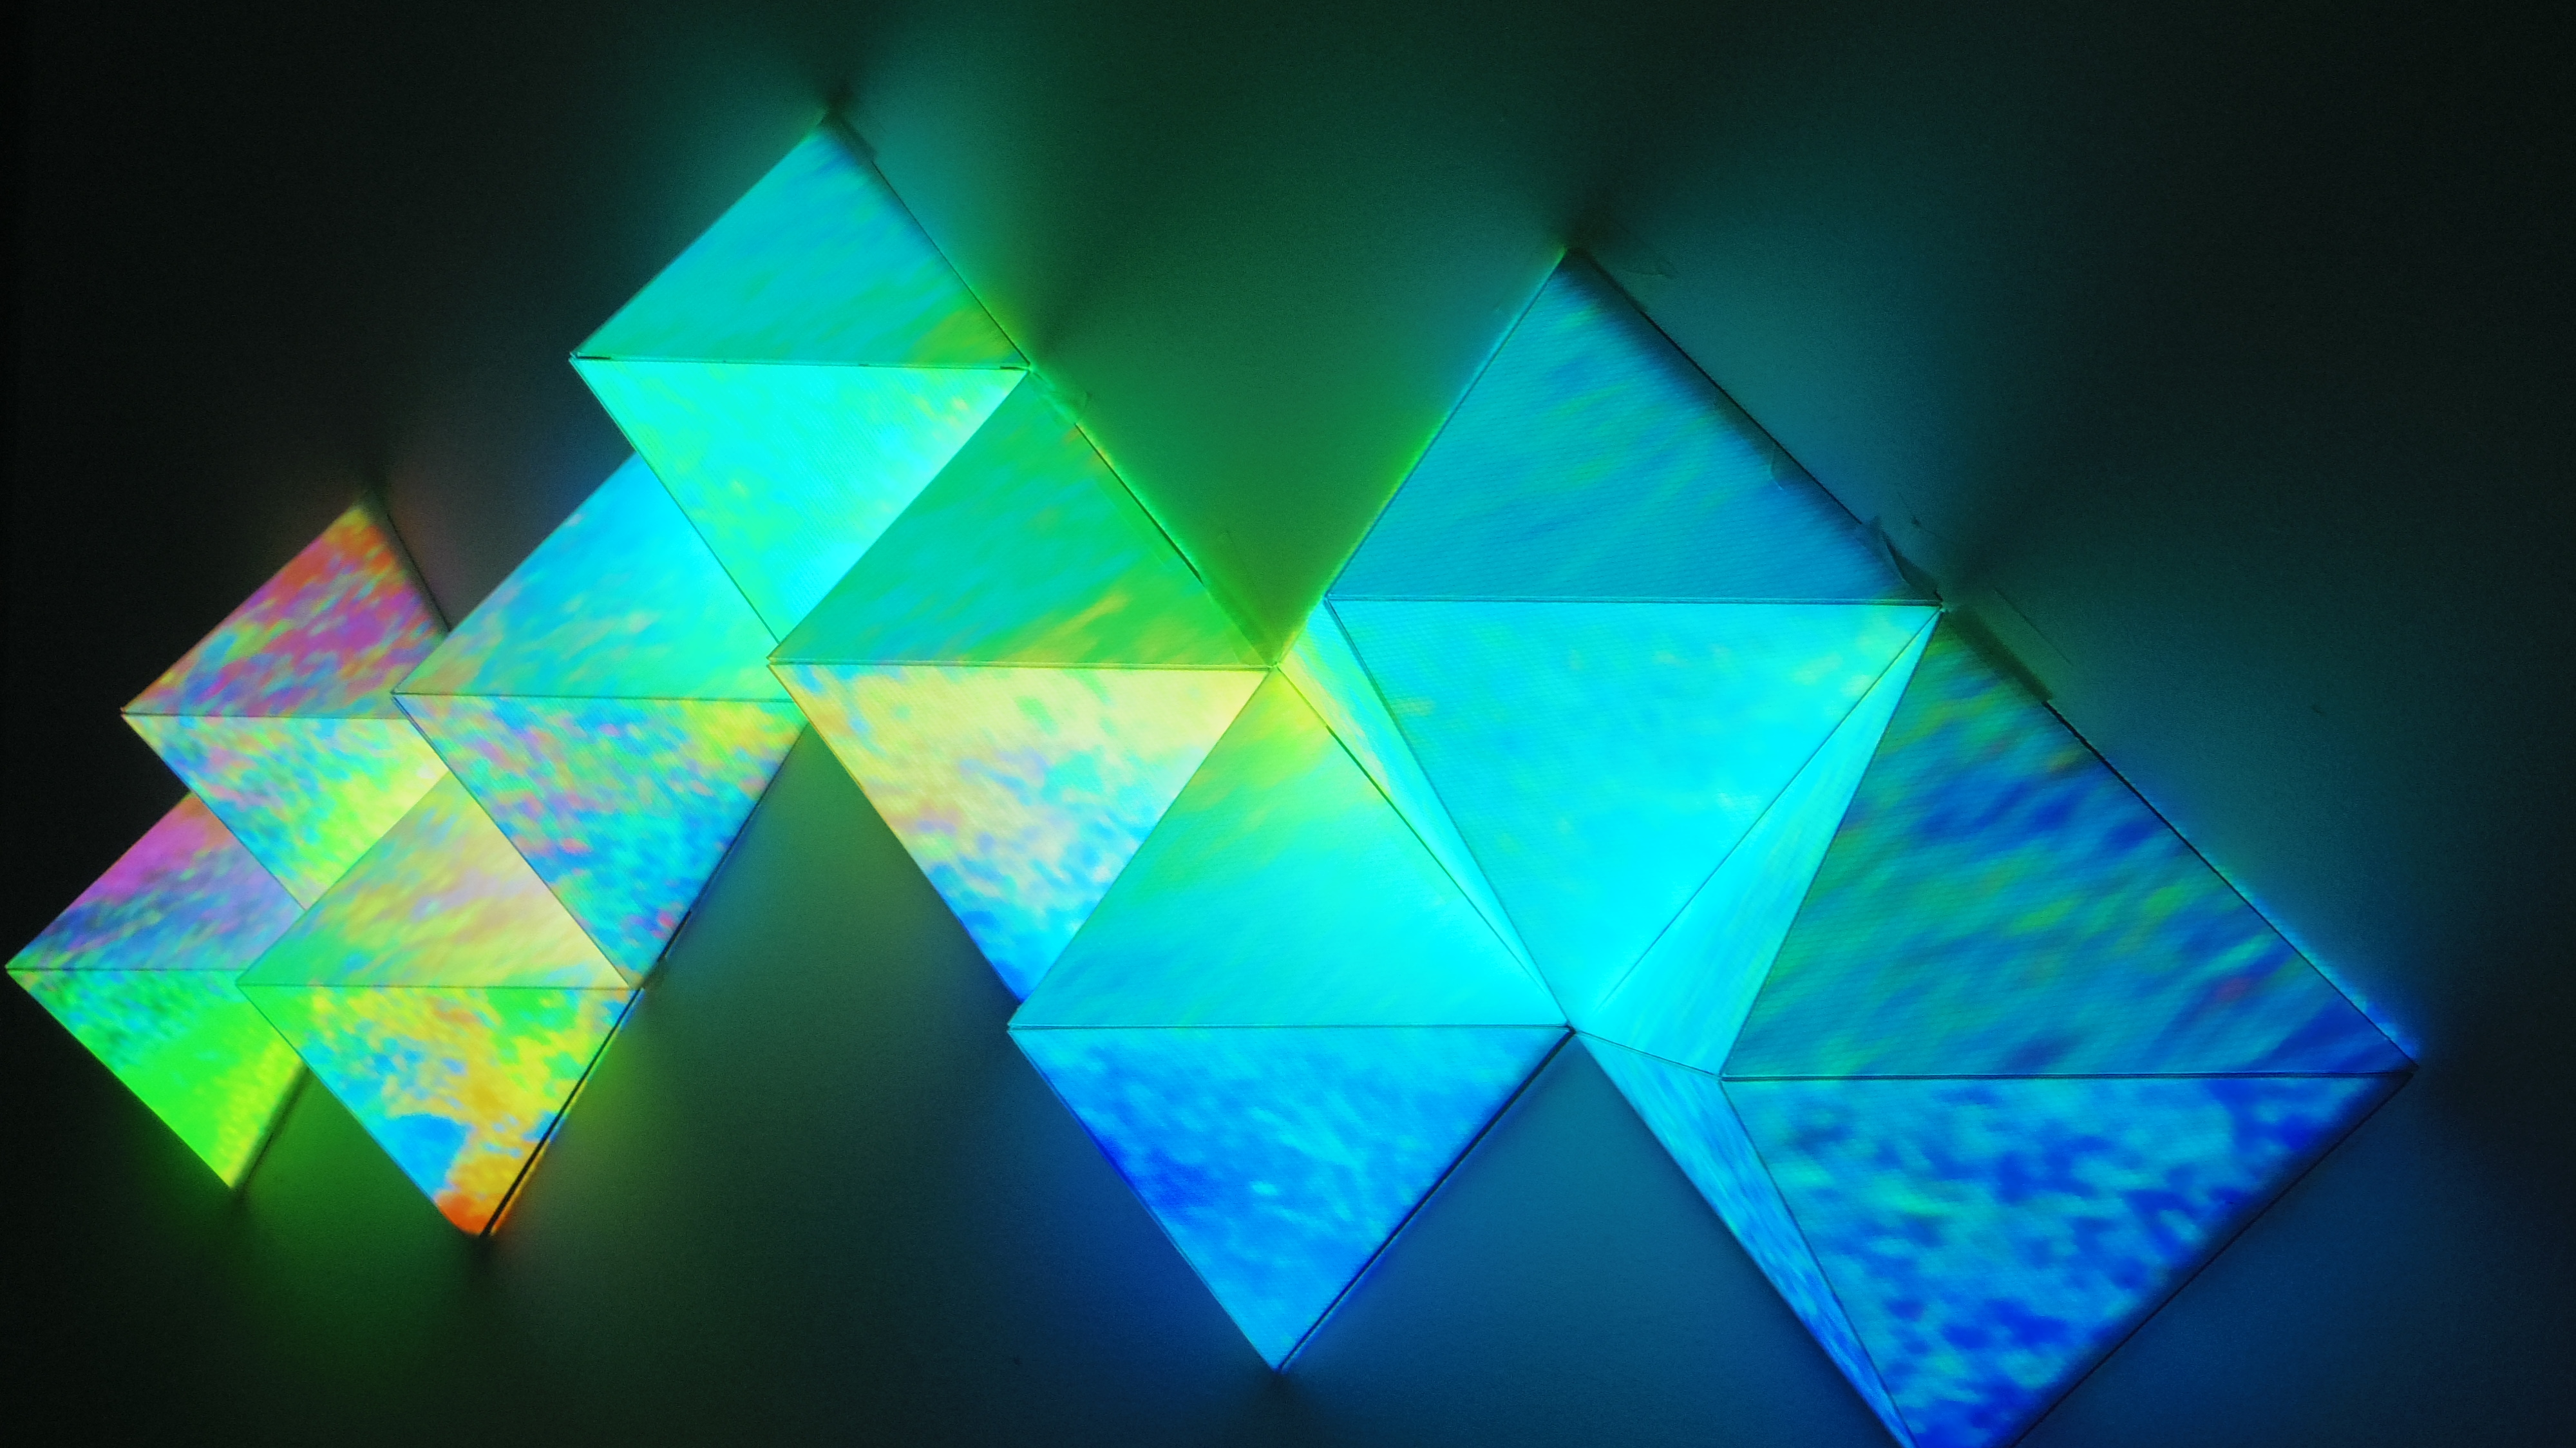 9 pyramids projection mapping